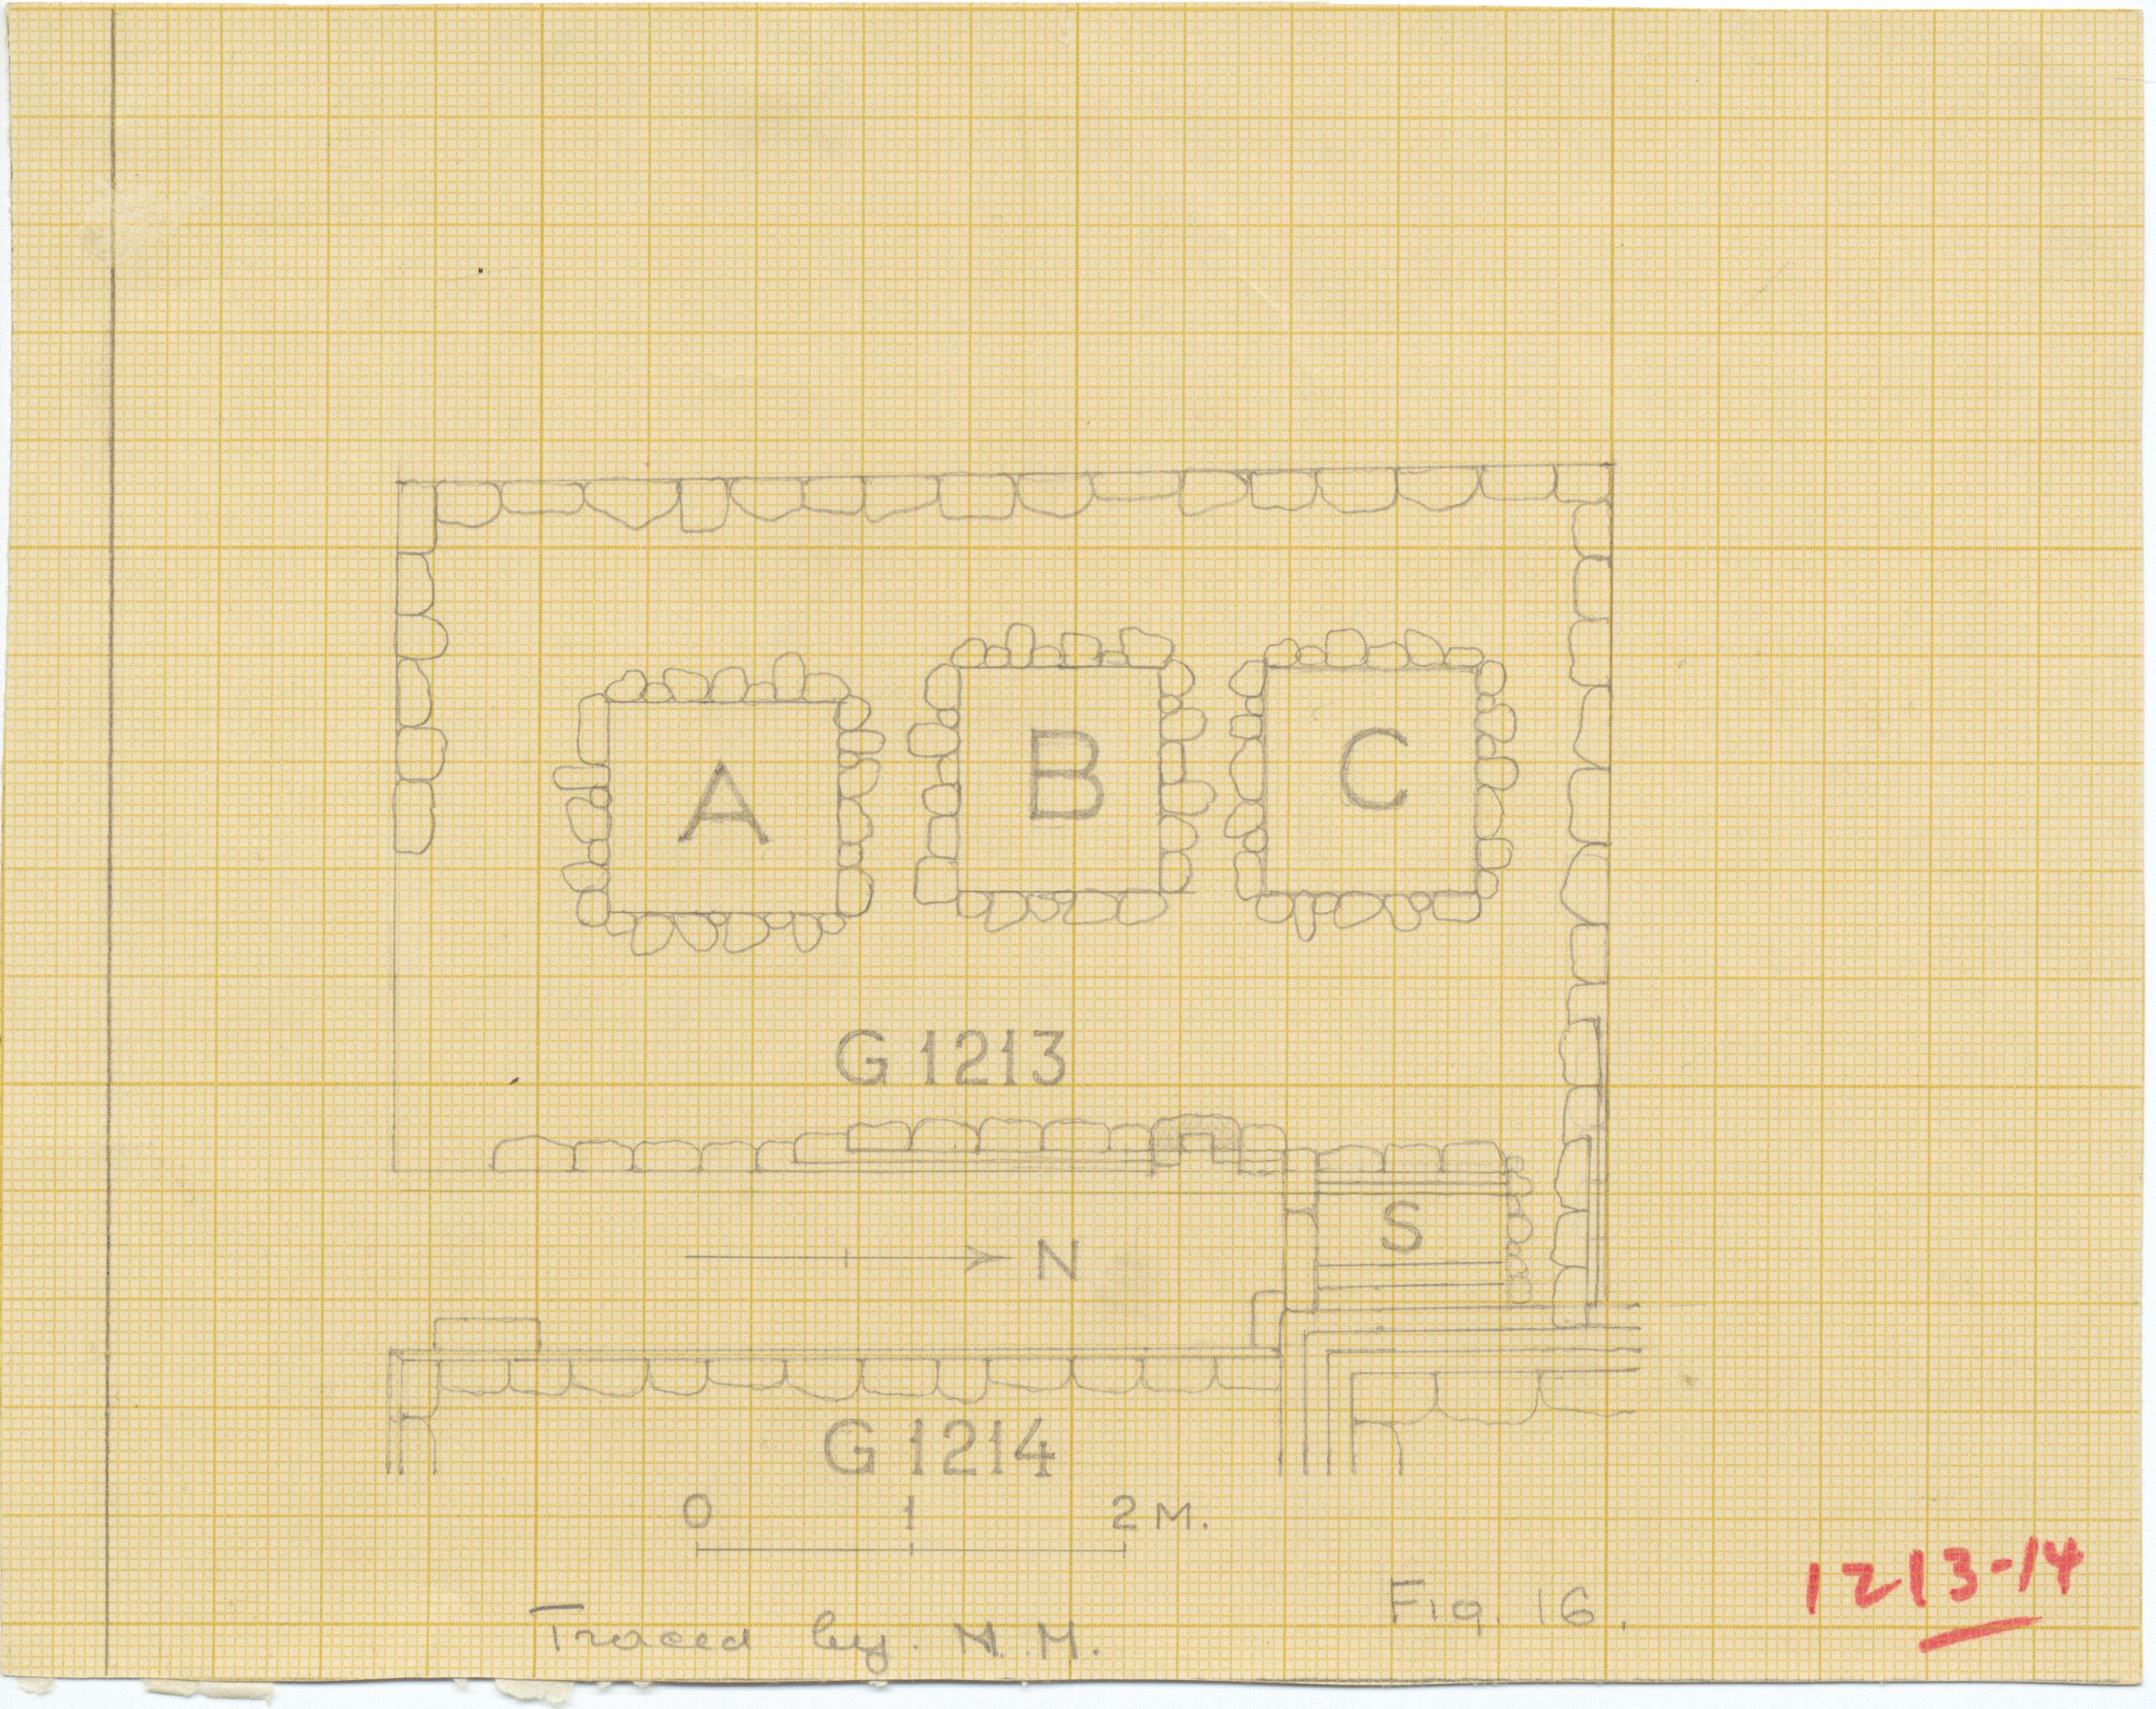 Maps and plans: Plan of G 1213, with position of G 1214